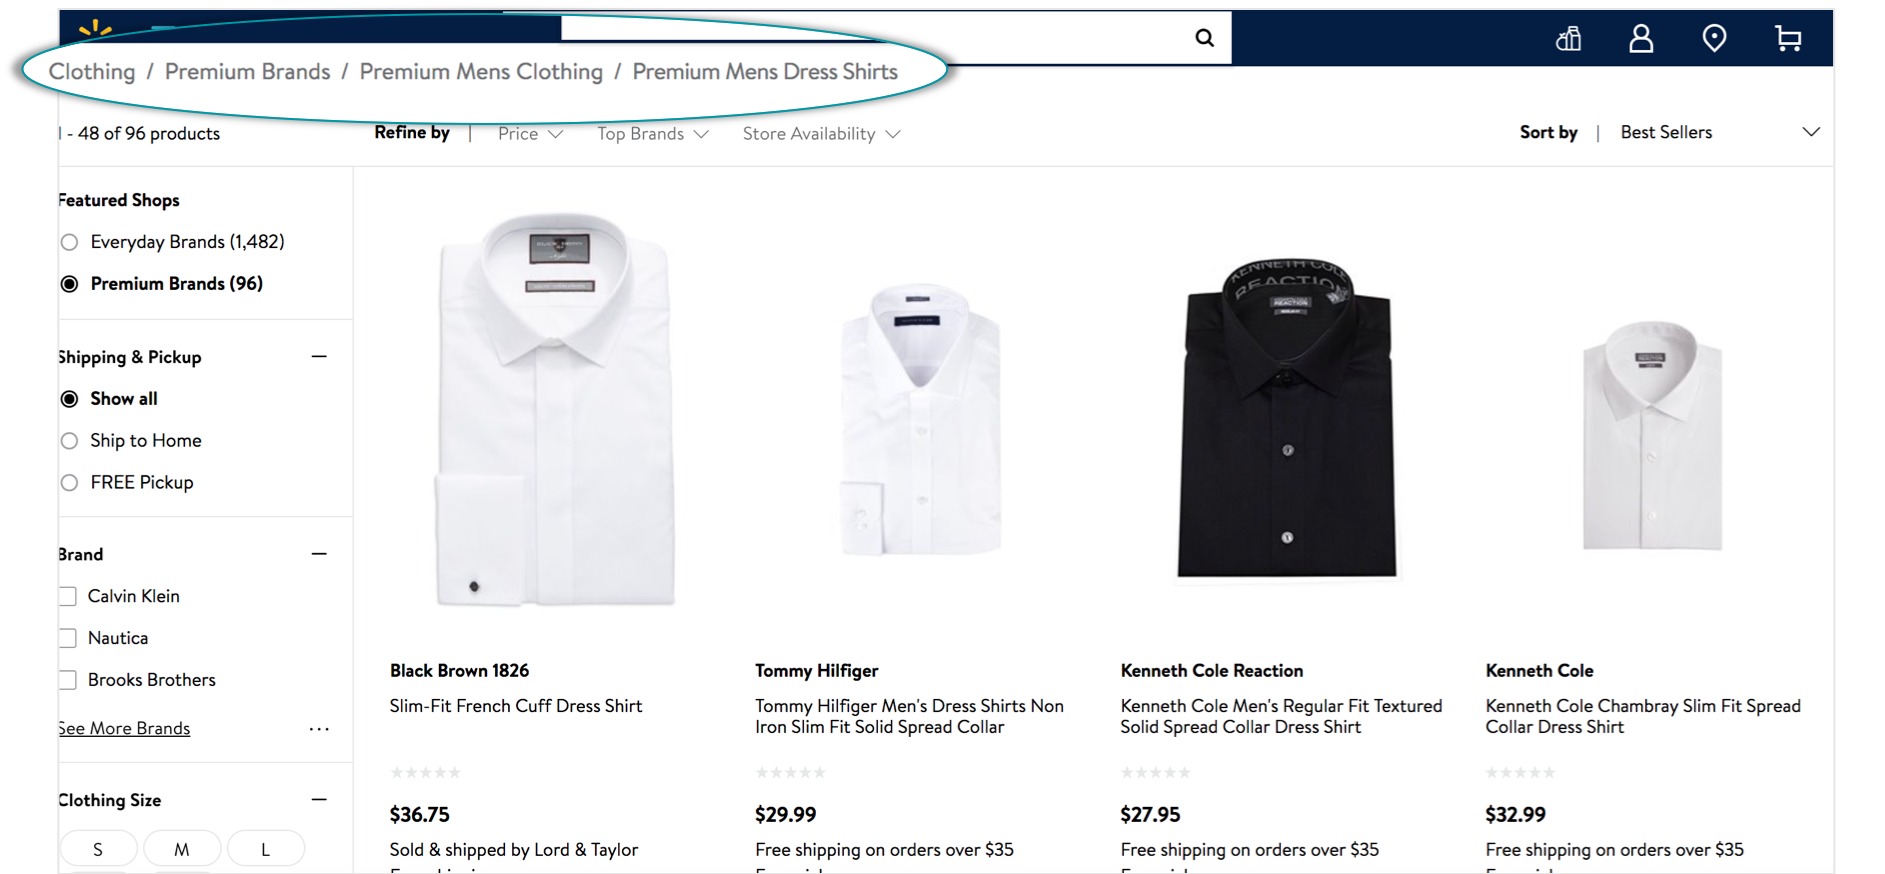 product data example on walmart.com